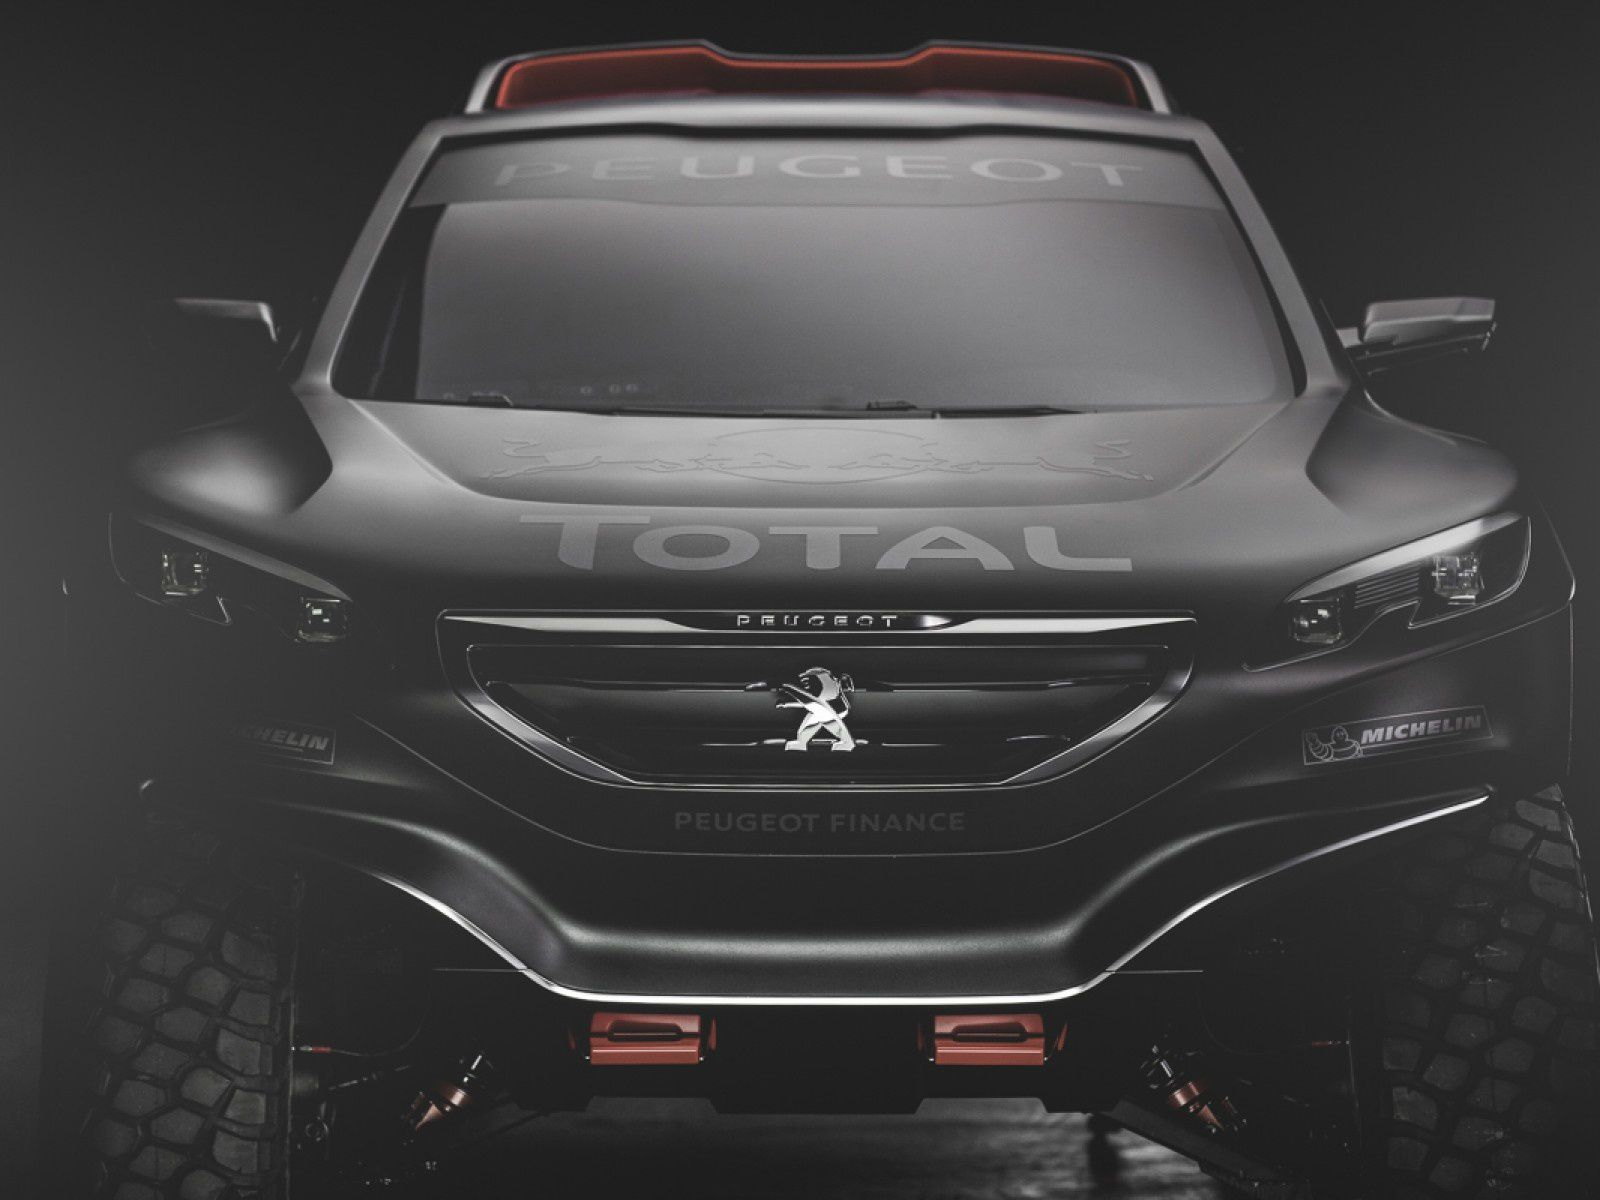 2015 PEUGEOT 2008 DKR, READY FOR DAKAR !